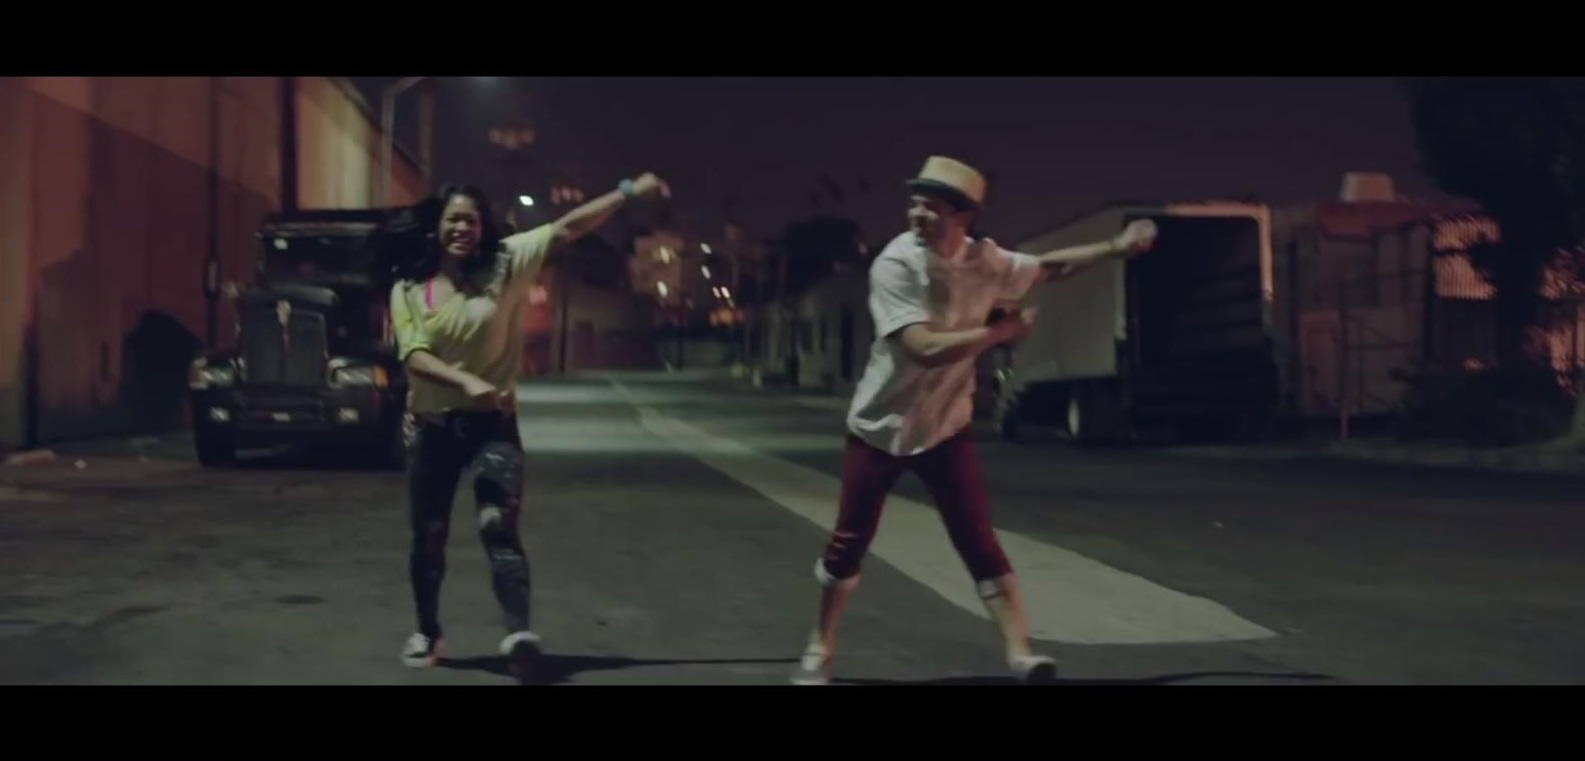 Pharrel Williams - Happy still (3)